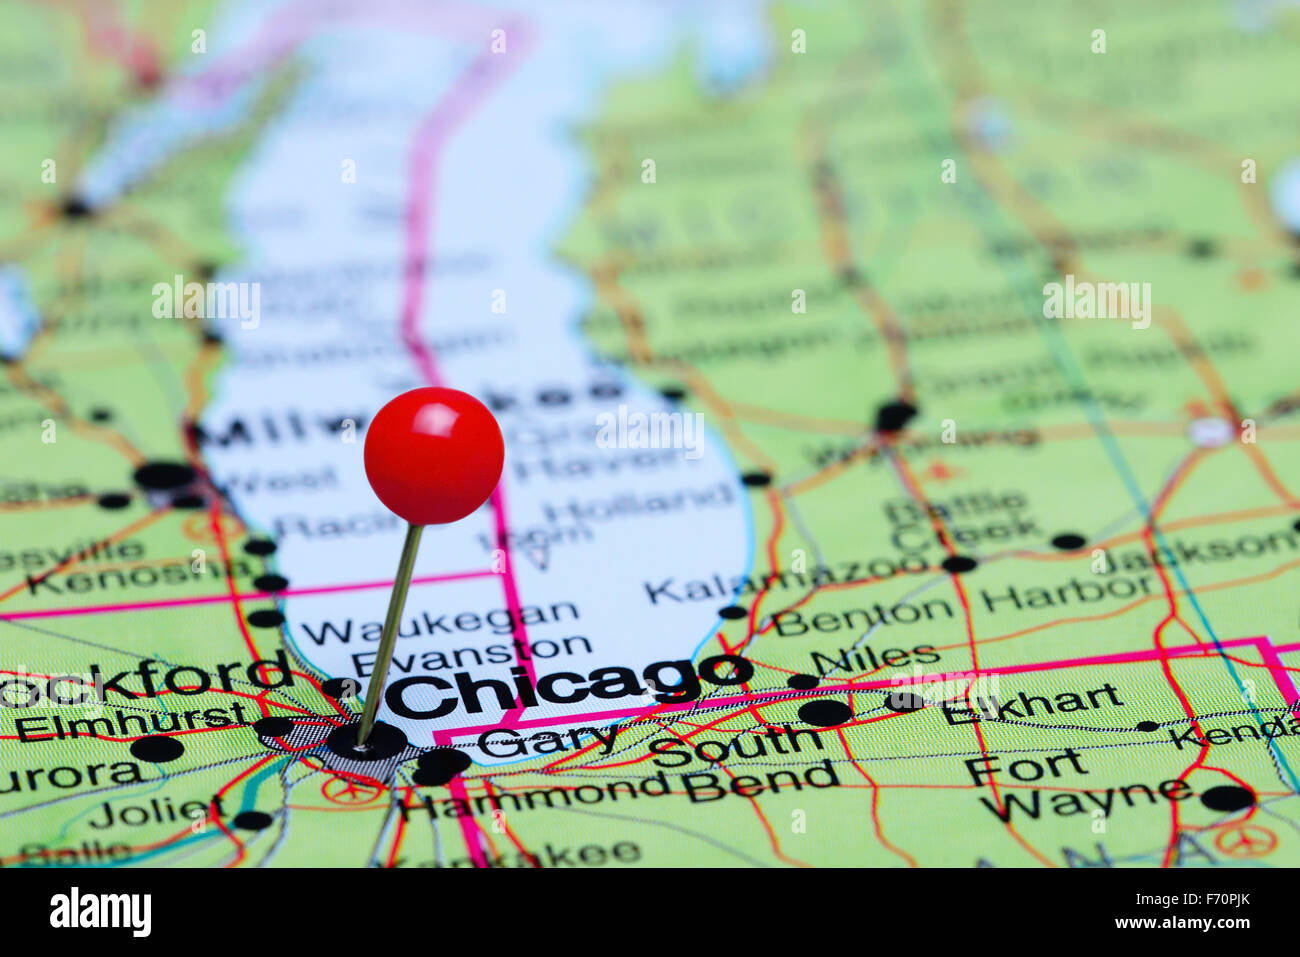 Chicago pinned on a map of USA Stock Photo: 90372203 - Alamy on puerto rico in chicago, money in chicago, bike in chicago, ball in chicago, weather in chicago, usa map in miami, statue of liberty in chicago, animals in chicago, butterflies in chicago, transportation in chicago, nebraska in chicago, home in chicago, turkey in chicago, zip code map in chicago,